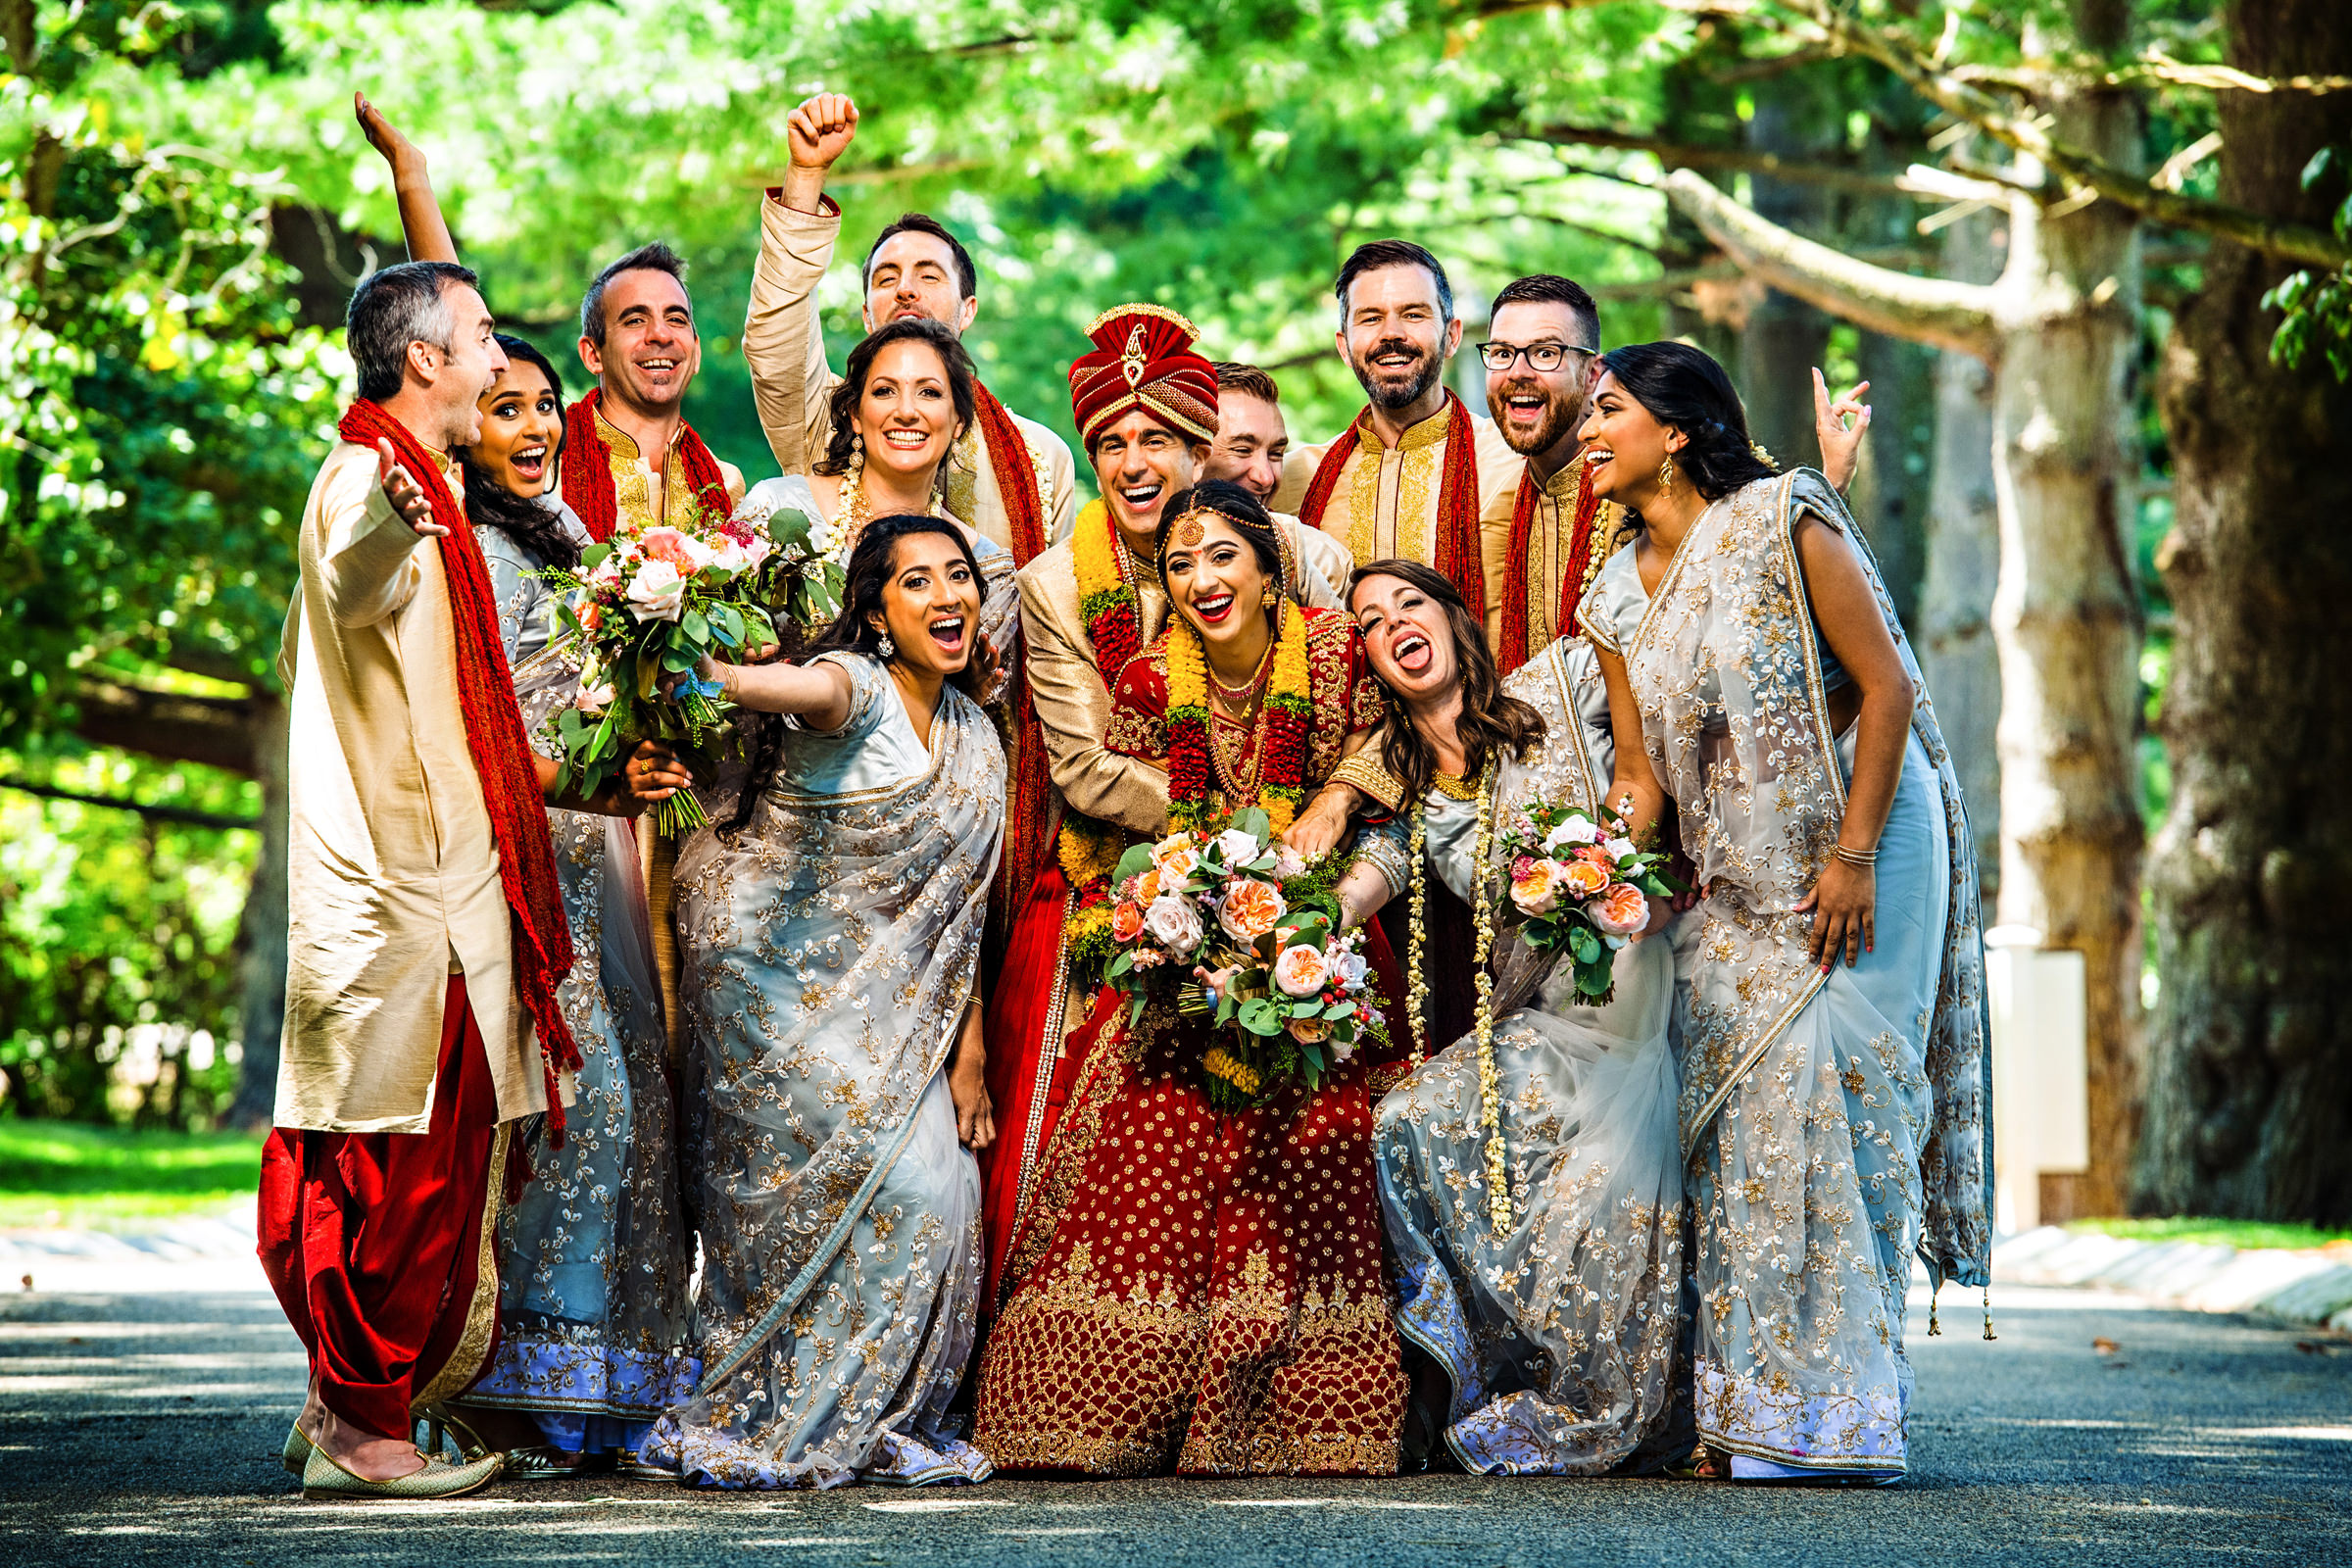 Indian bridal party hamming it up - photo by Jeff Tisman Photography